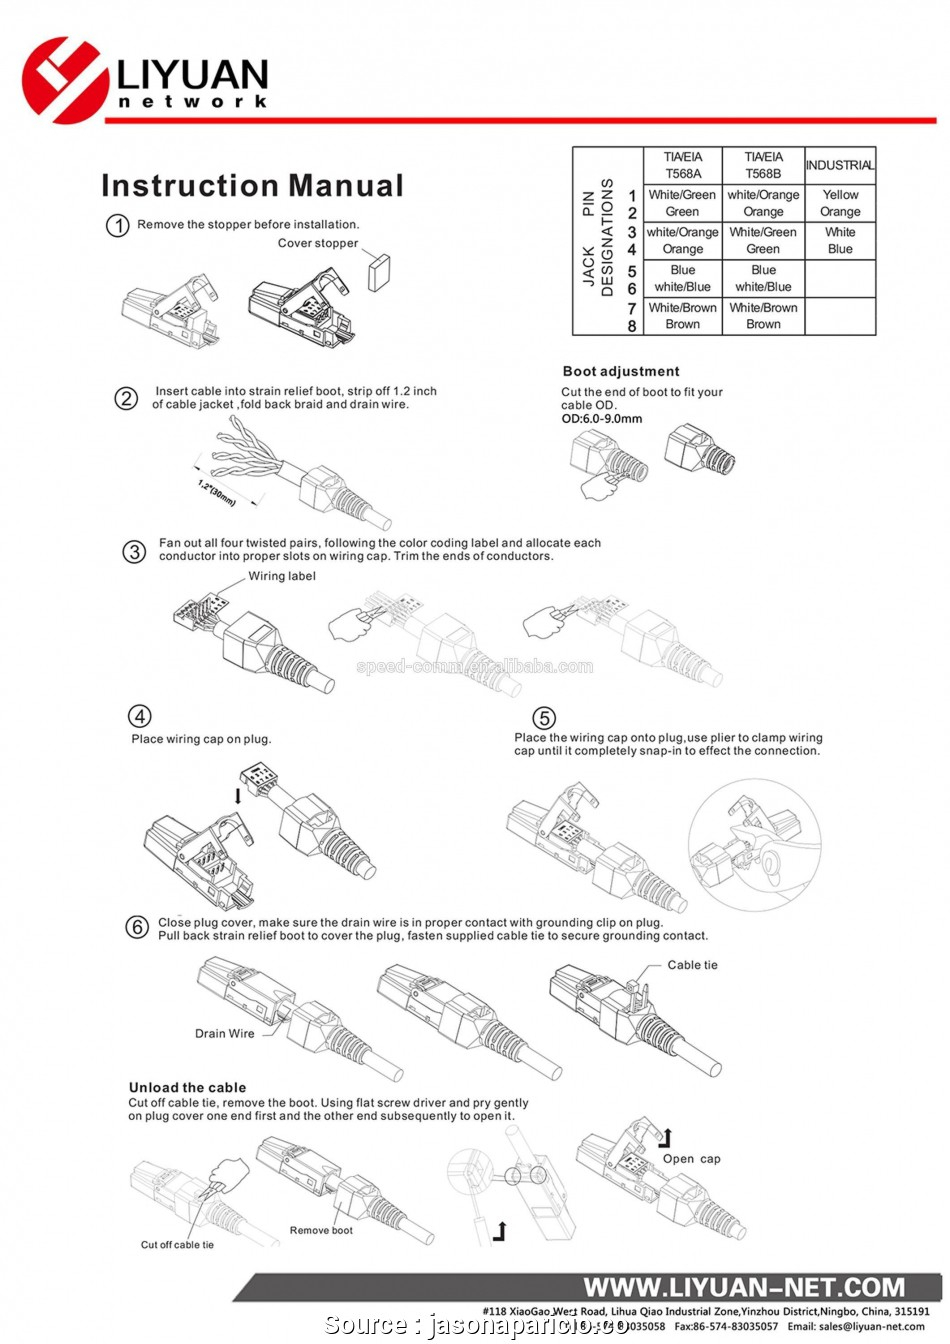 Usb Ethernet Crossover Cable Wiring Diagram | Wiring Library - Usb To Ethernet Wiring Diagram